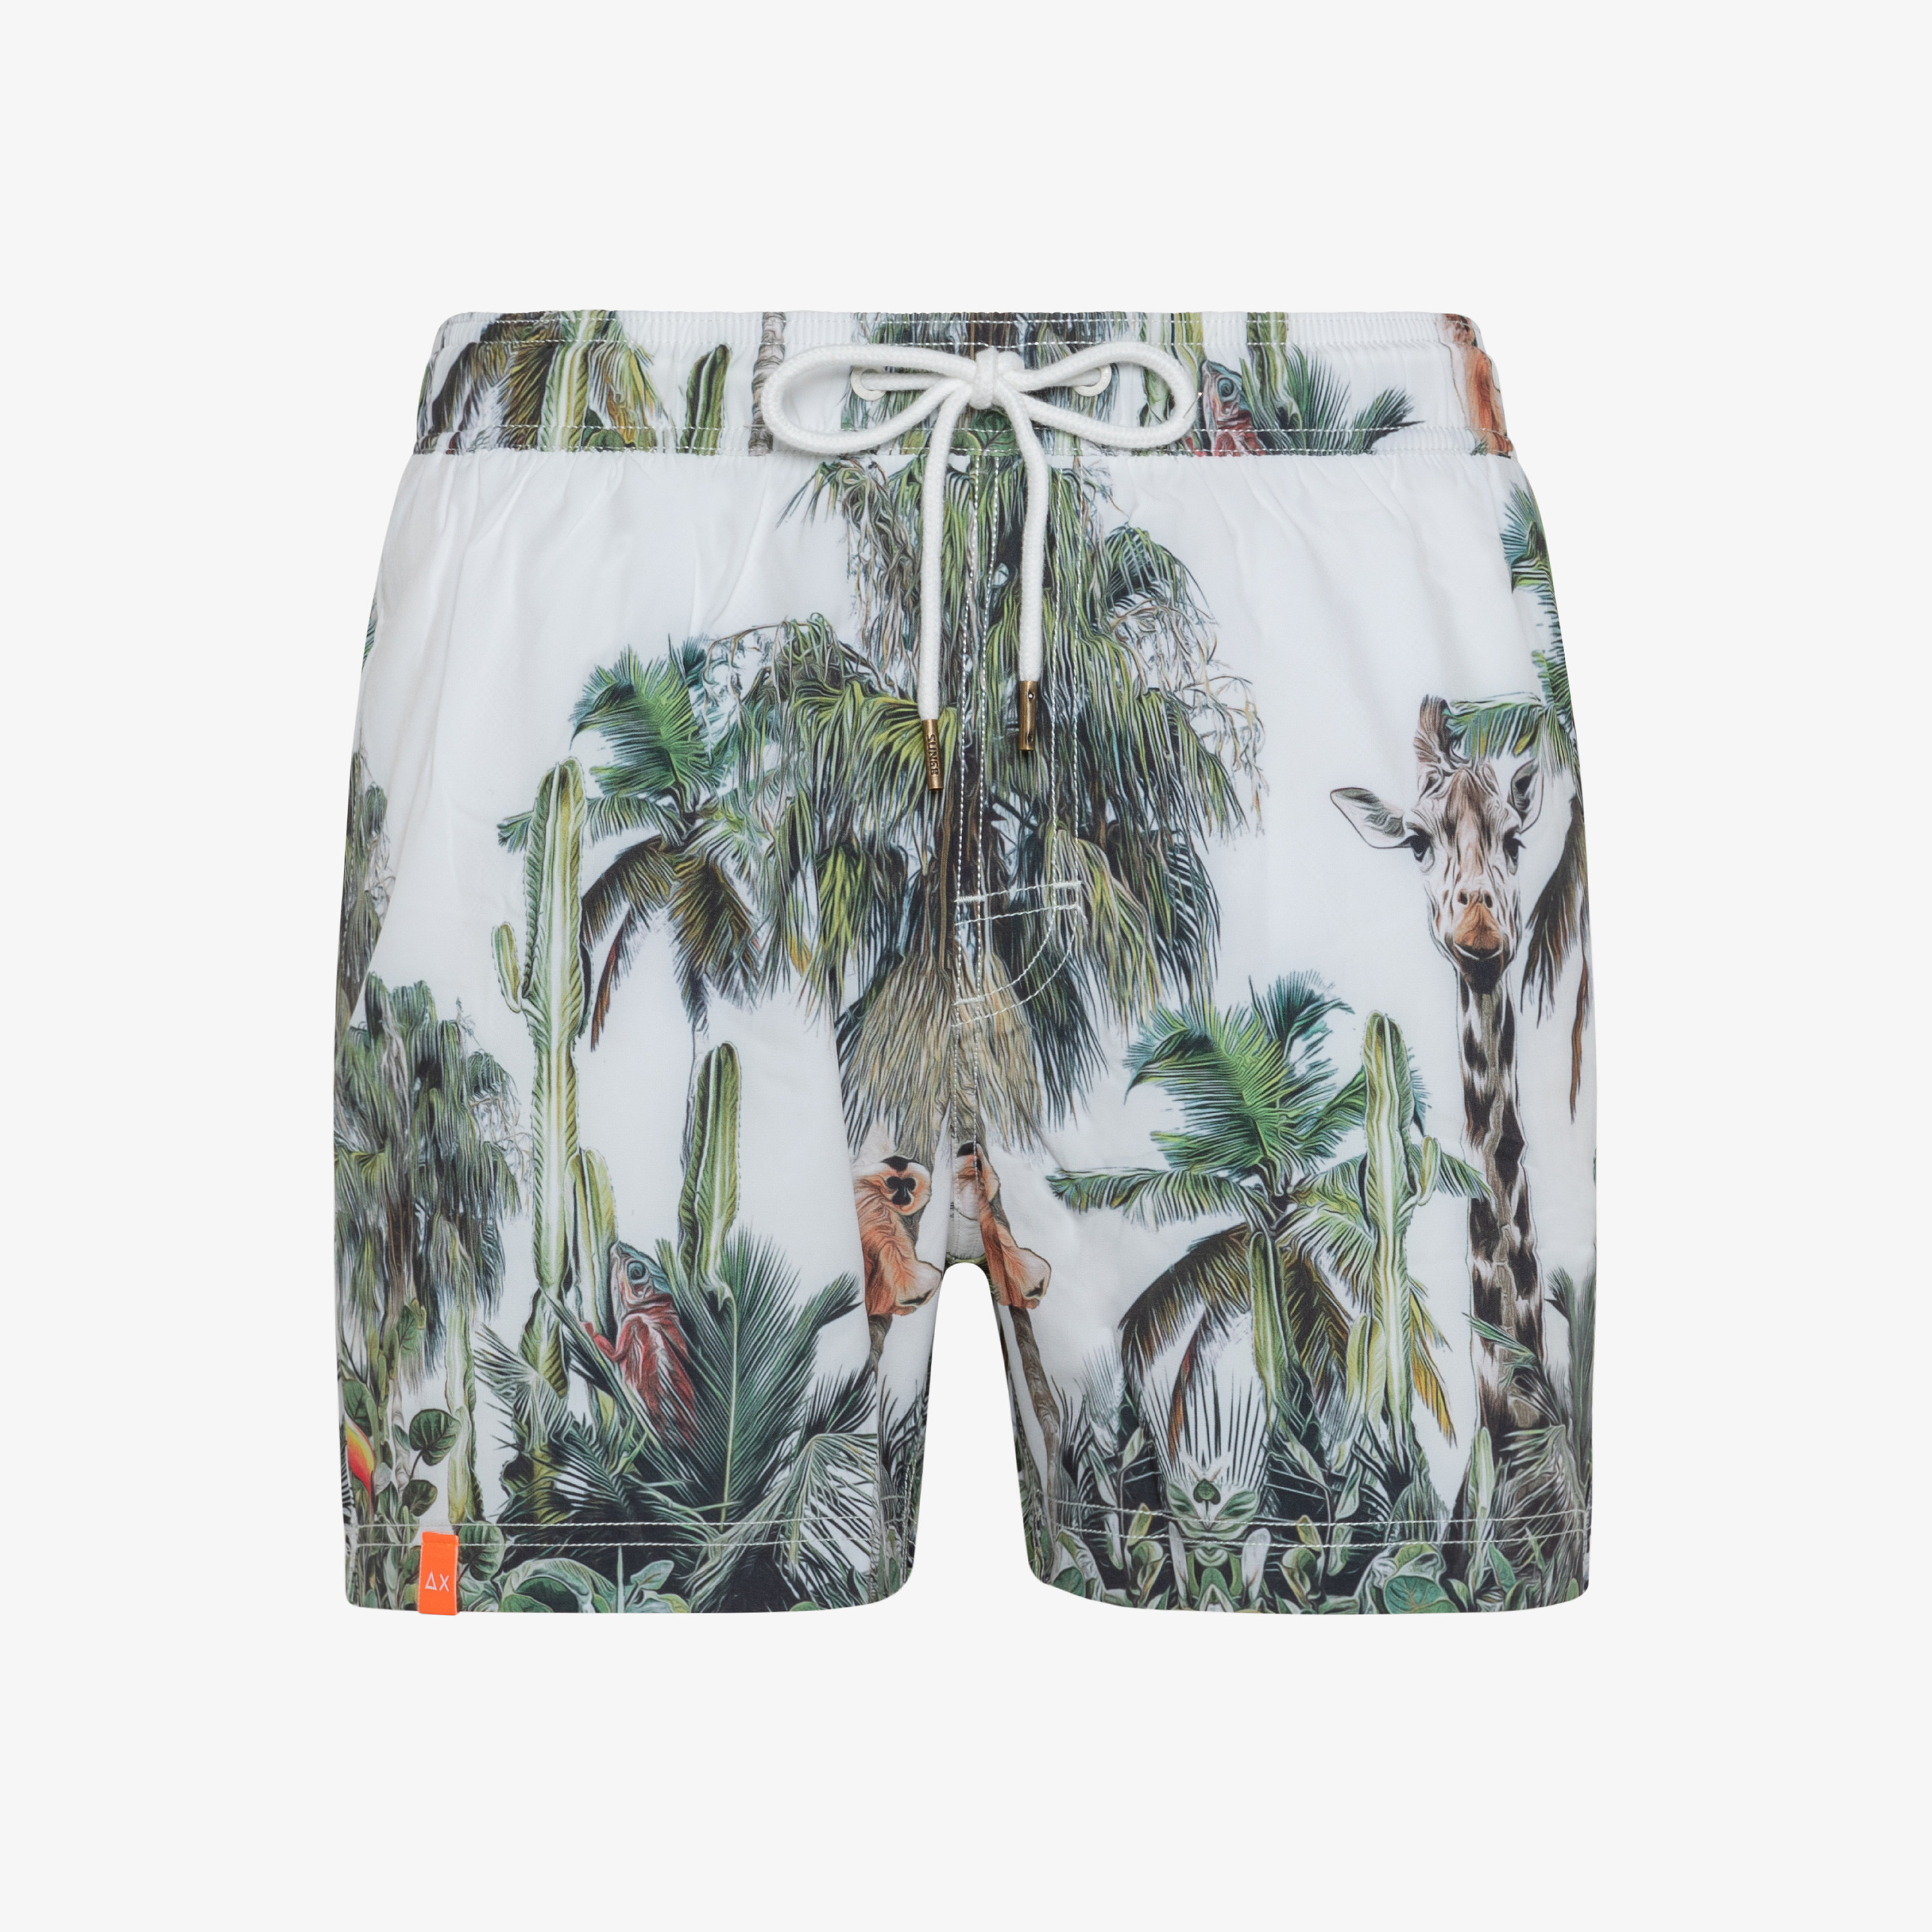 SWIM PANT ANIMAL BIANCO PANNA